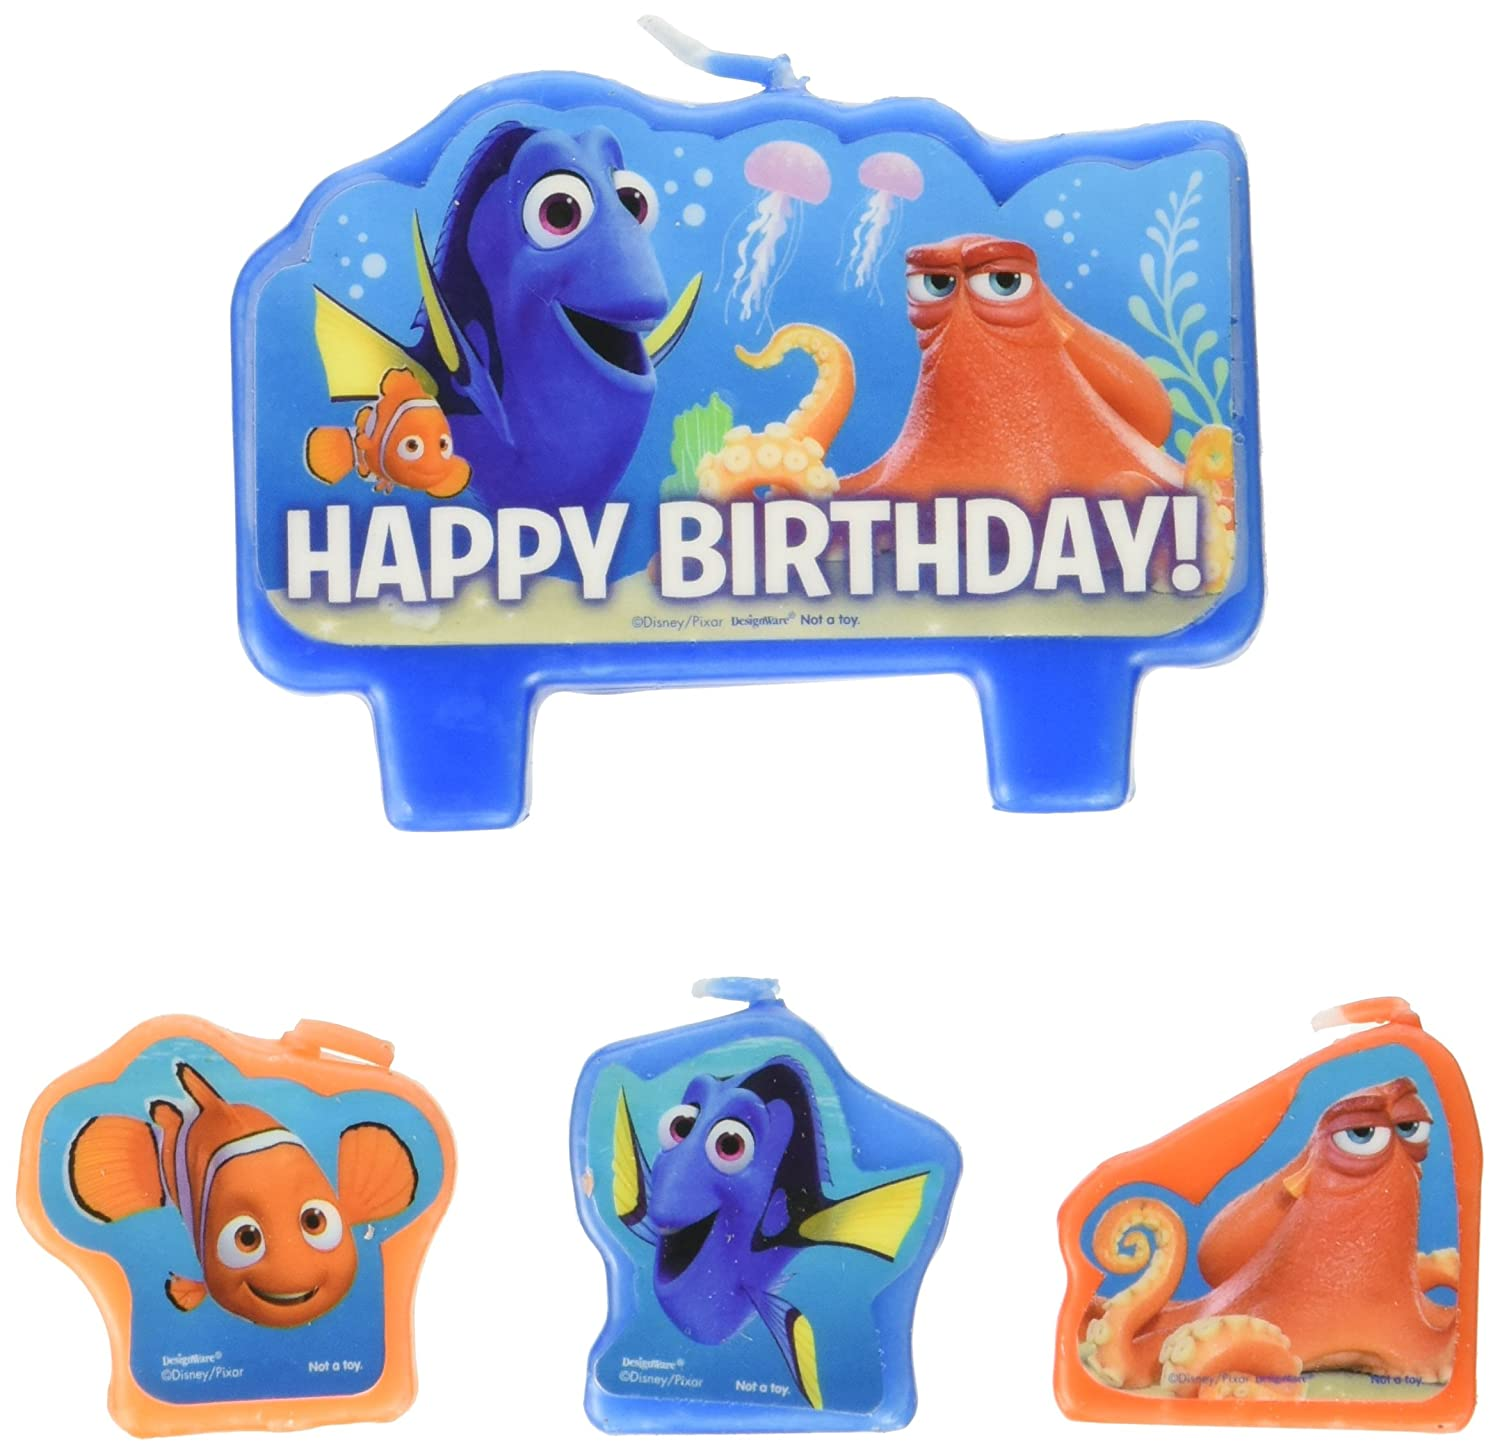 Amazon.com: Finding Dory Party Supplies - Birthday Candle Set: Toys ...